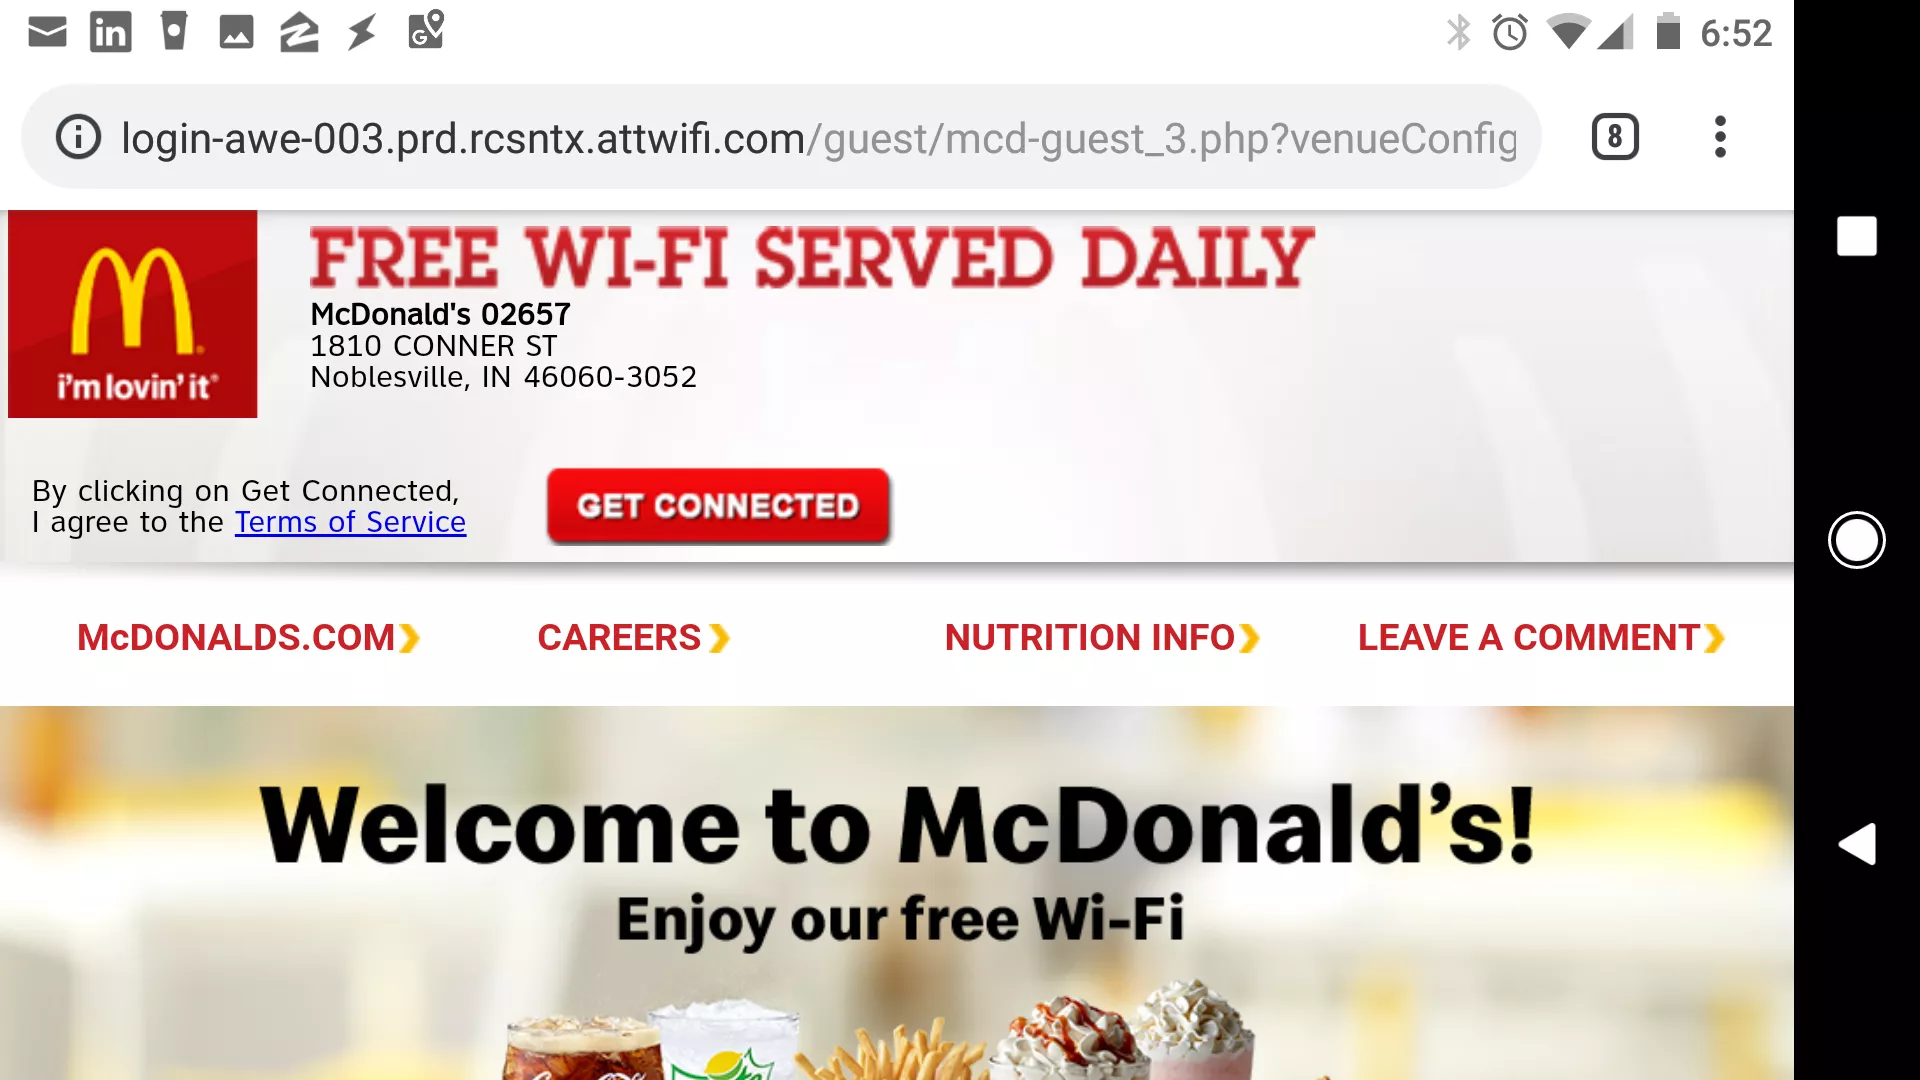 McDonald's welcome page